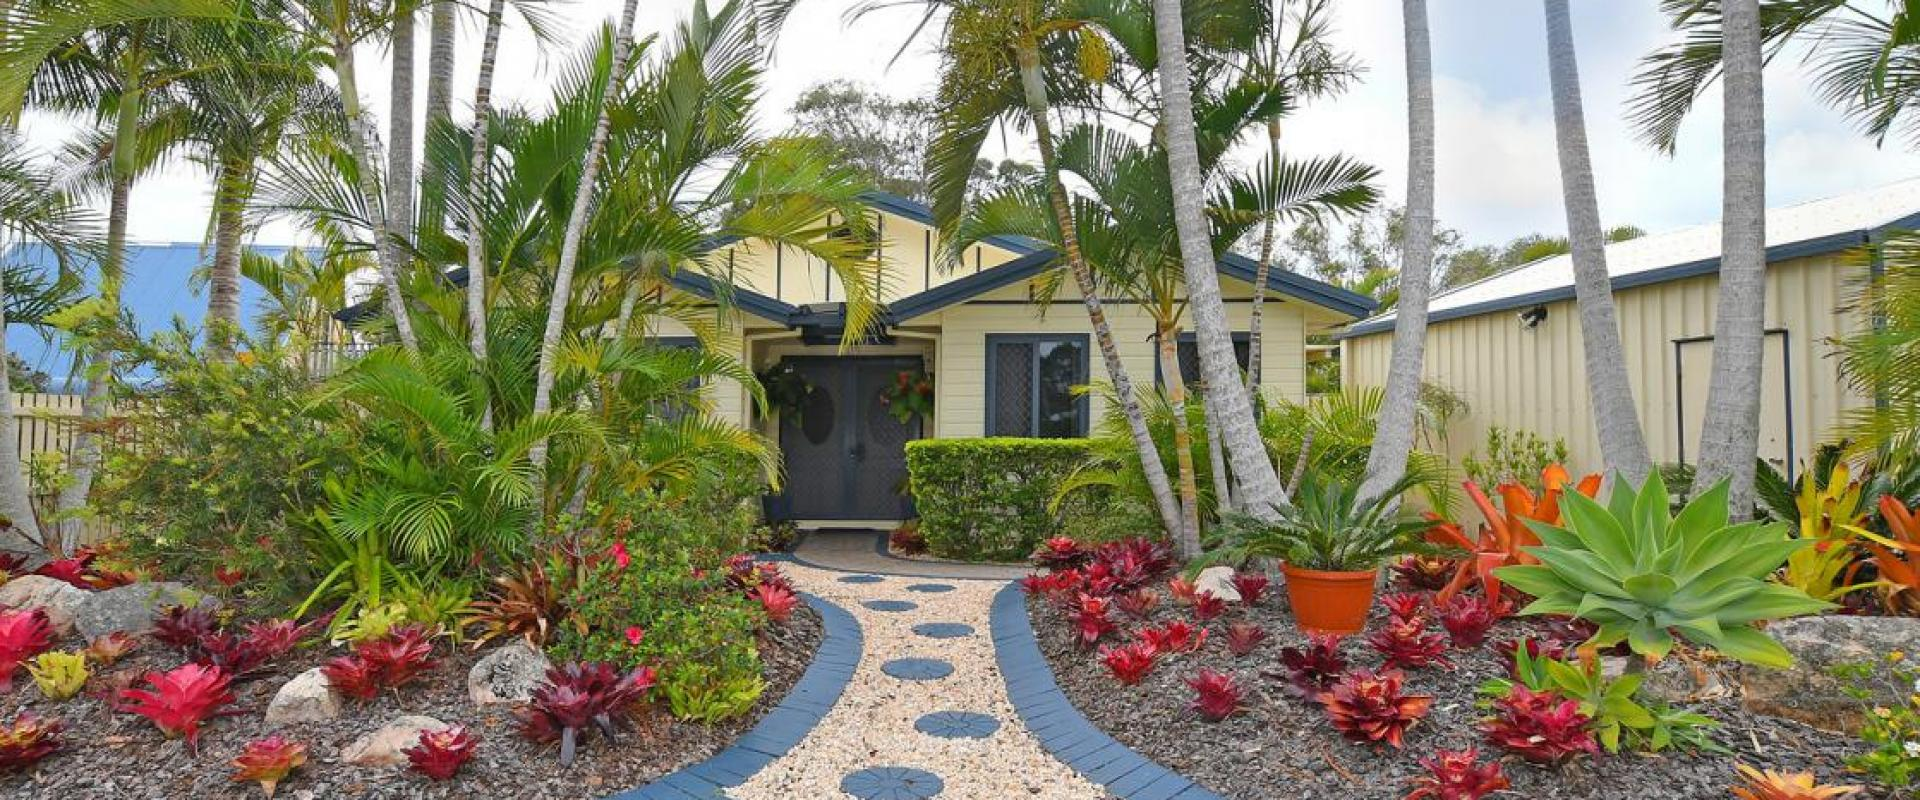 SUPERB OPPORTUNITY TO PURCHASE A UNIQUE CHARACTER FAMILY HOME A SHORT DISTANCE AWAY FROM THE GREAT SANDY STRAITS MARINA, BOAT AND CARAVAN PARKING.